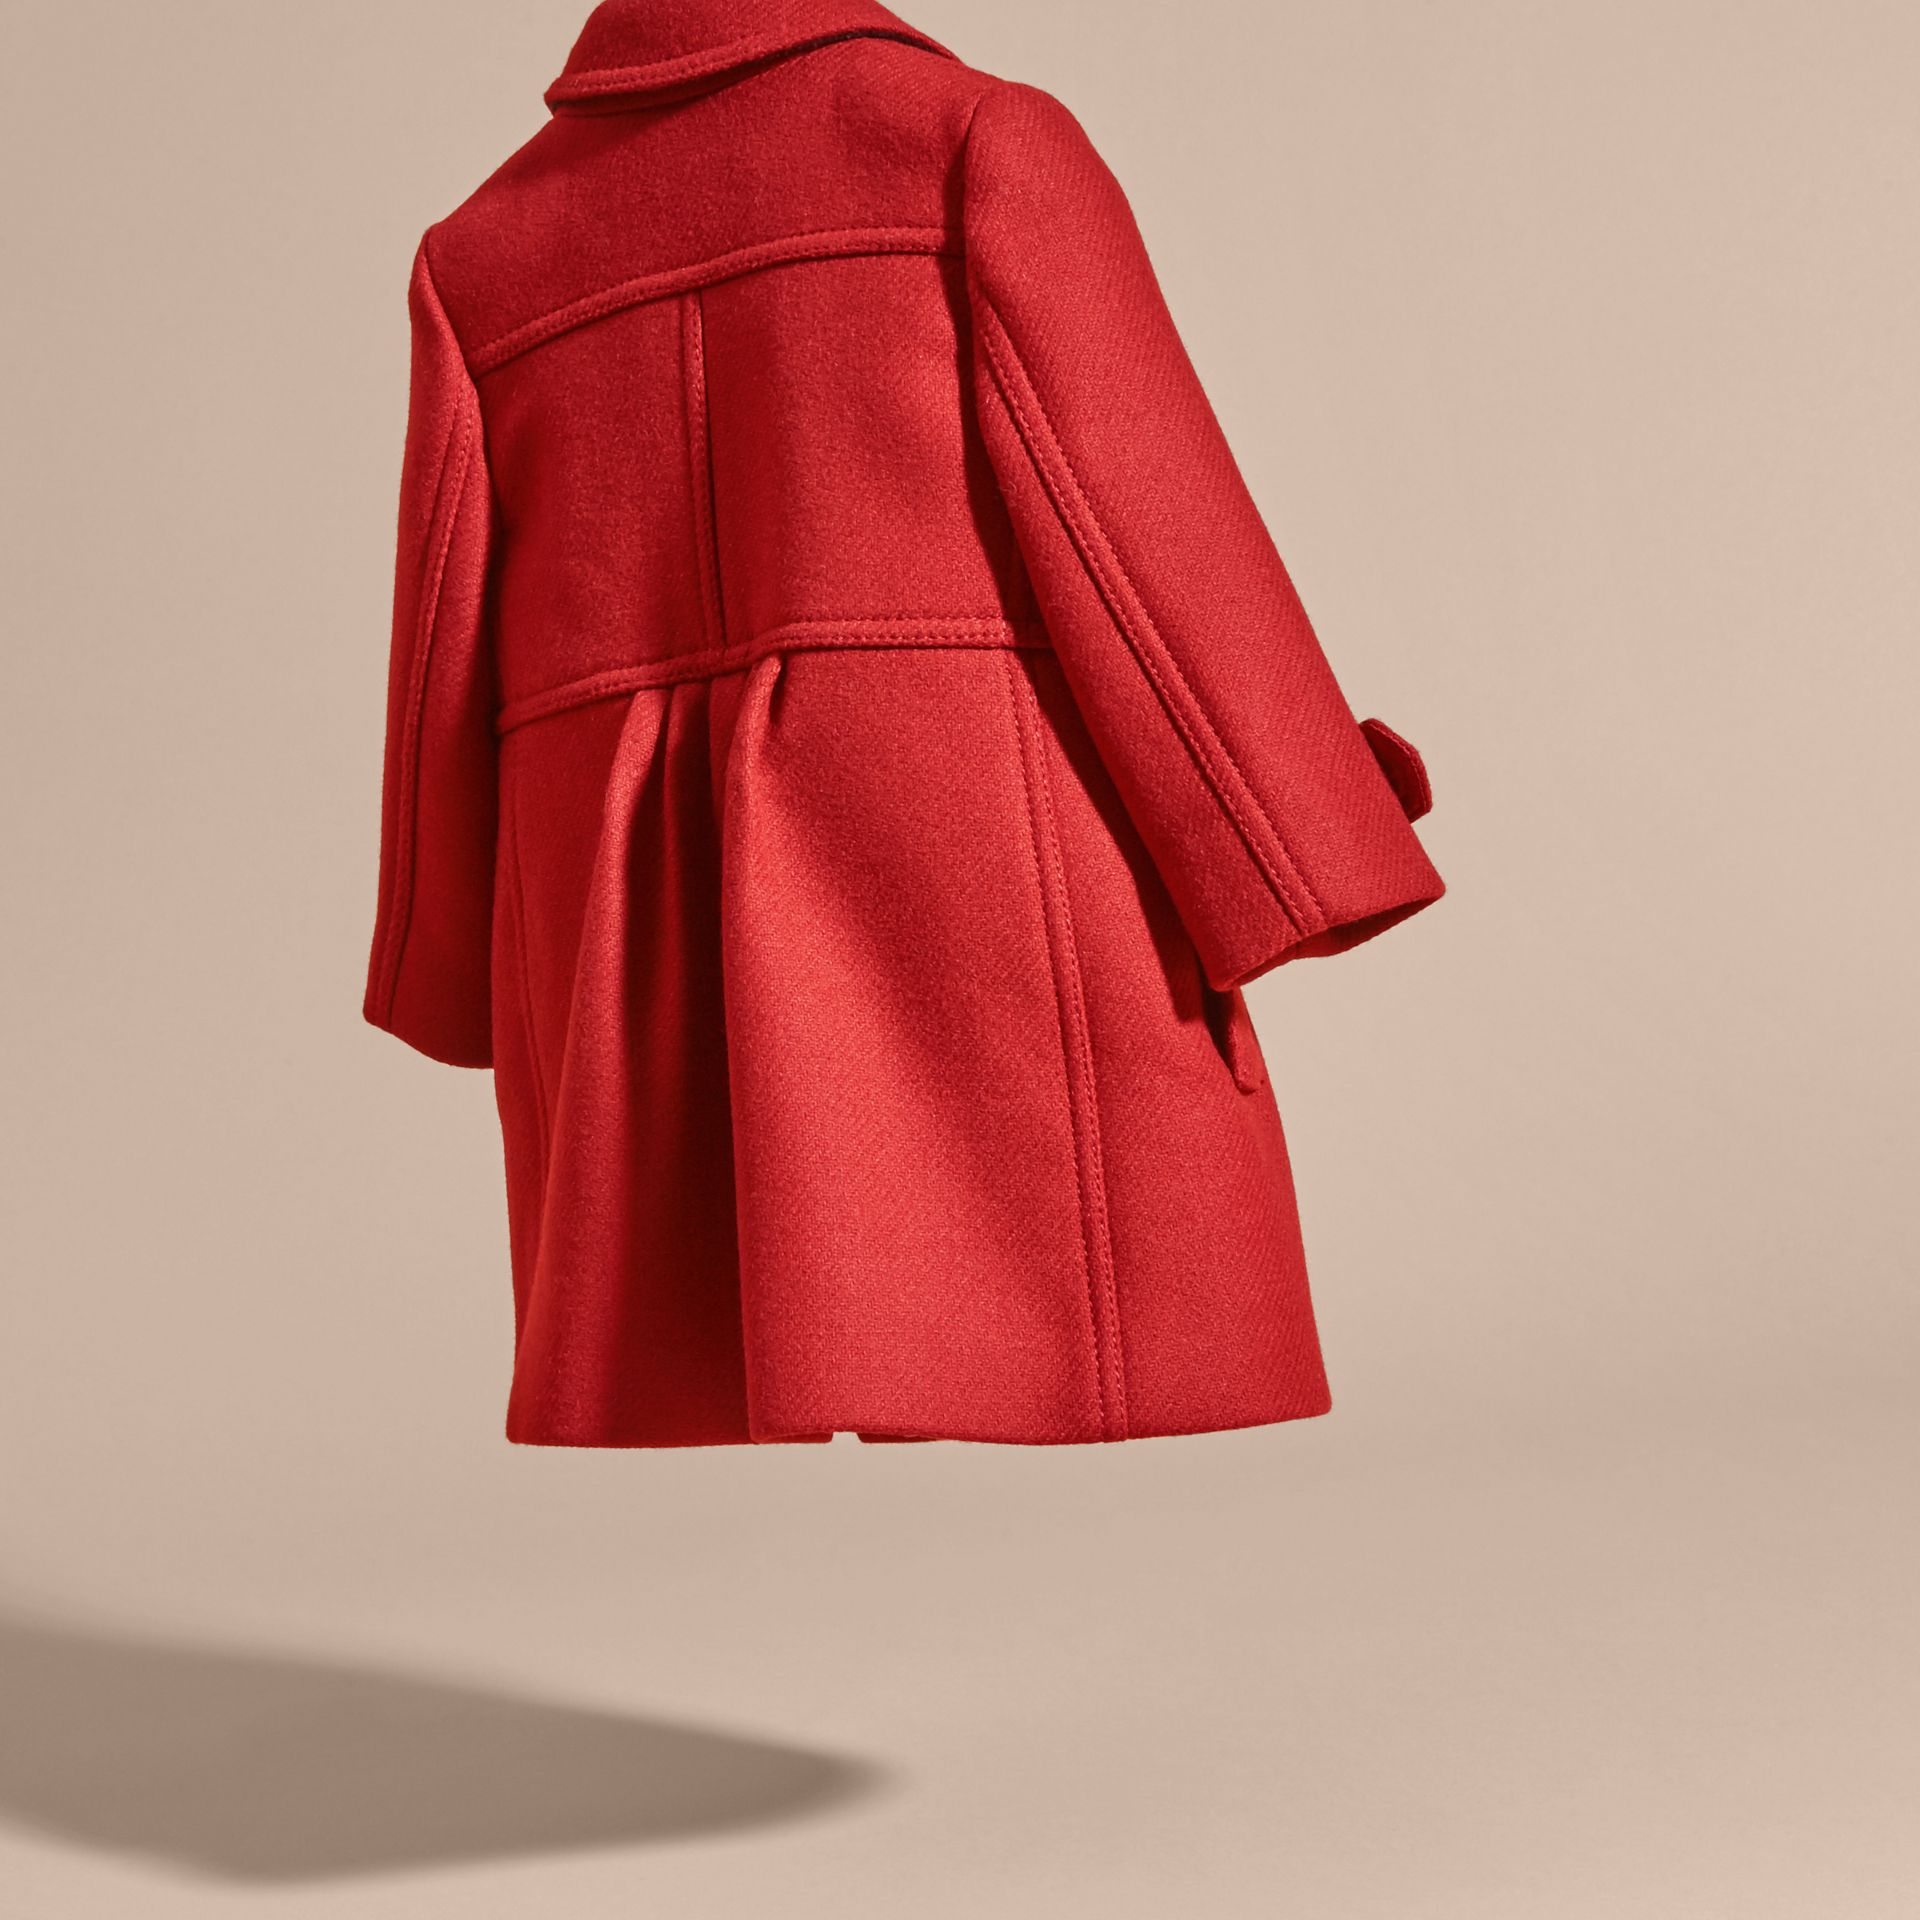 Damson red Tailored Wool Cashmere Blend Coat Damson - gallery image 4